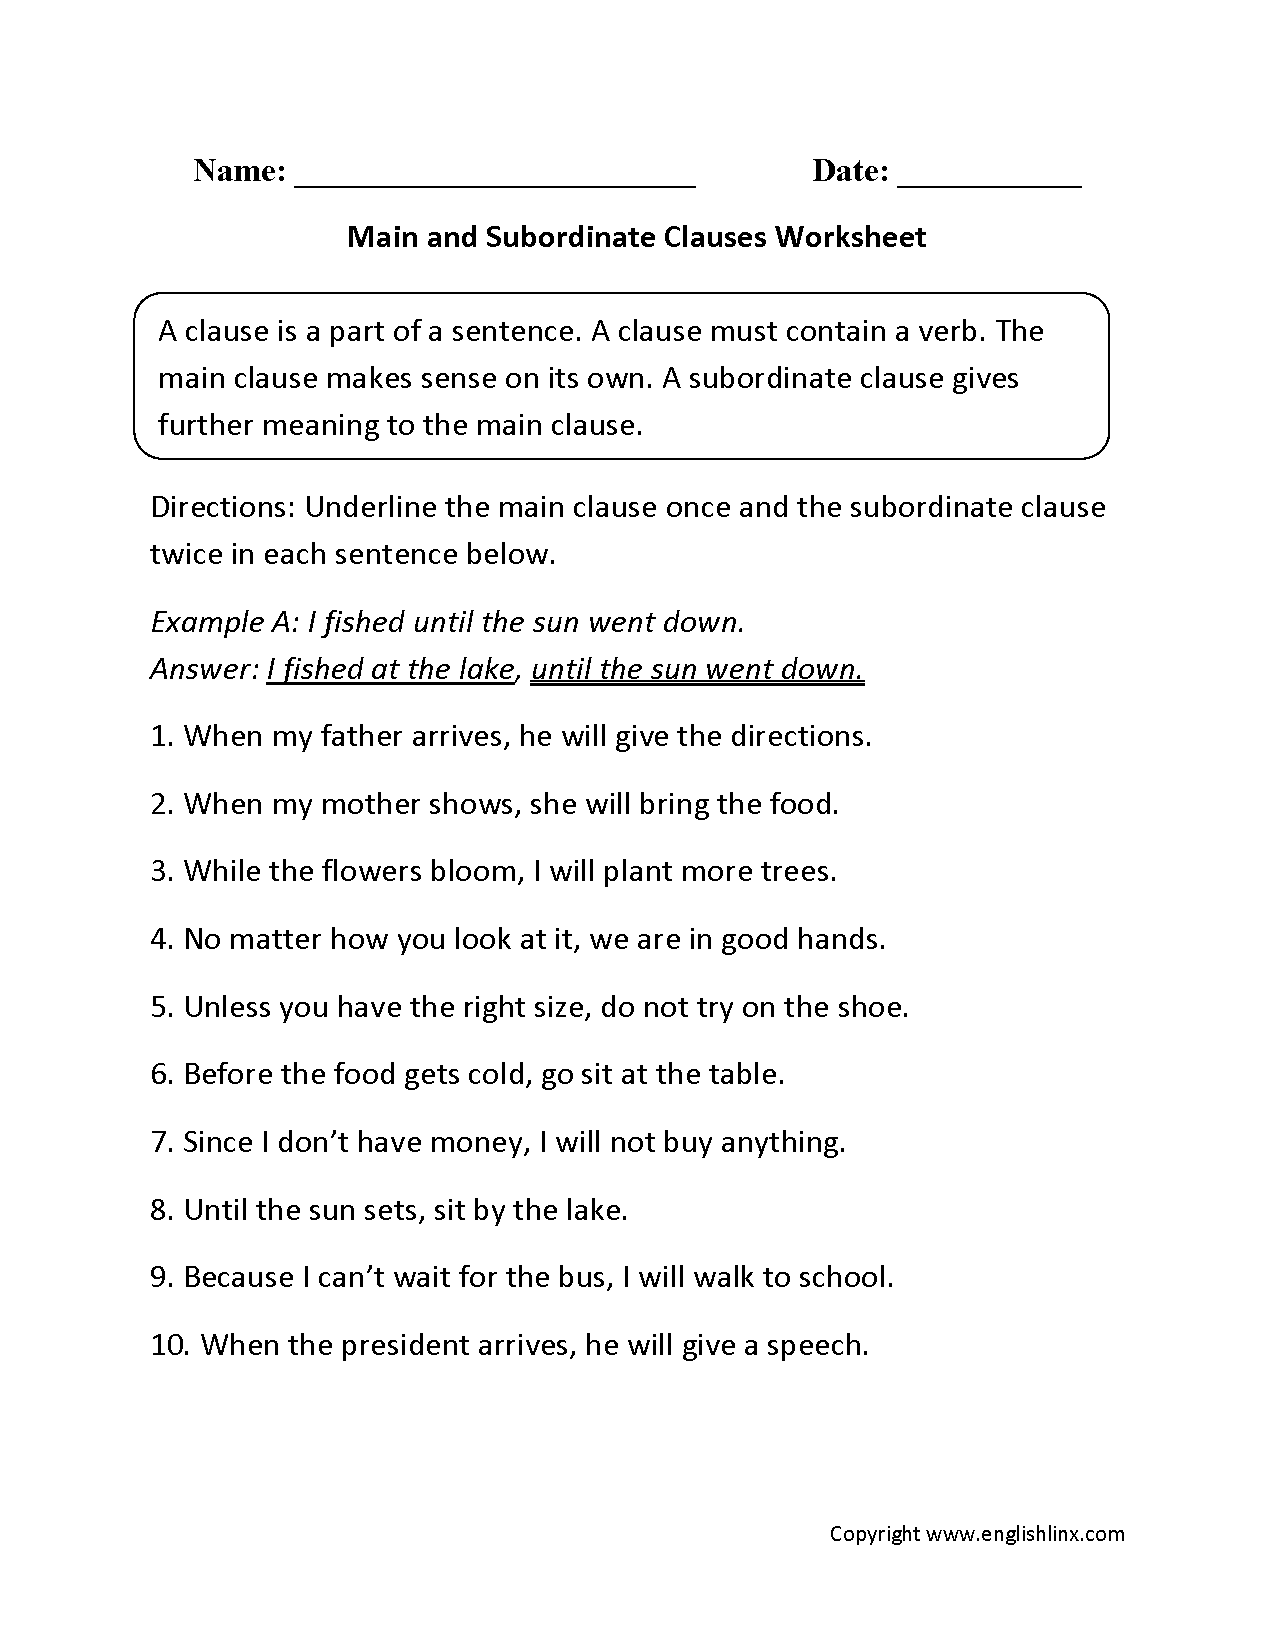 Worksheets Clauses Worksheet main and subordinate clauses worksheet cvccv pinterest this directs the student to underline clause once twice